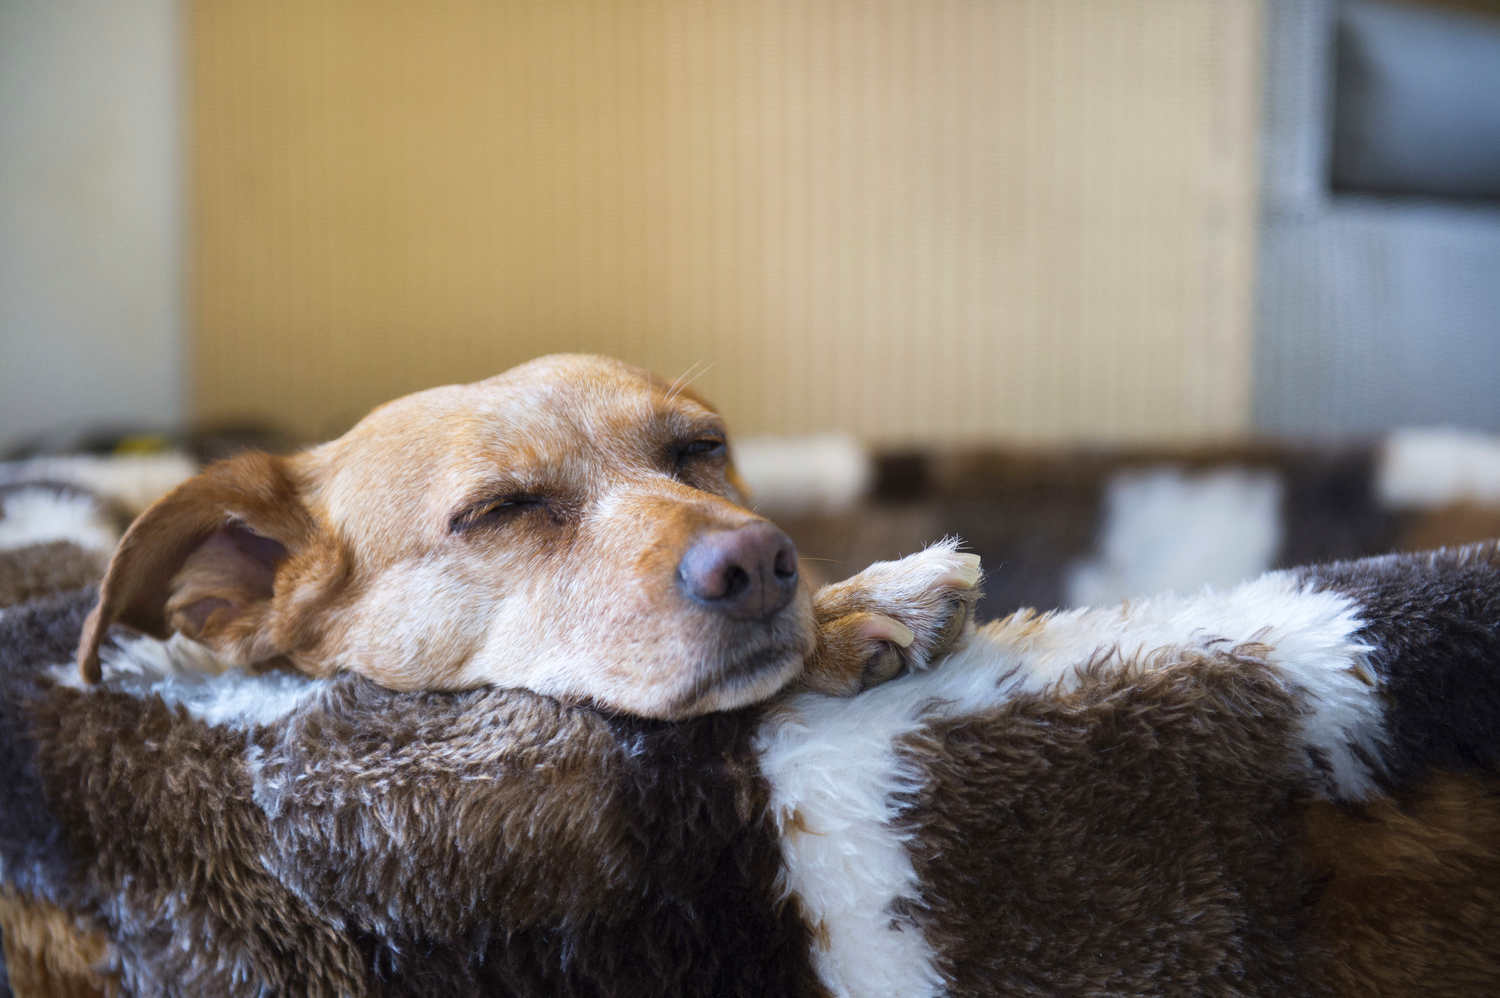 Photo by IvonneW/iStock / Getty Images